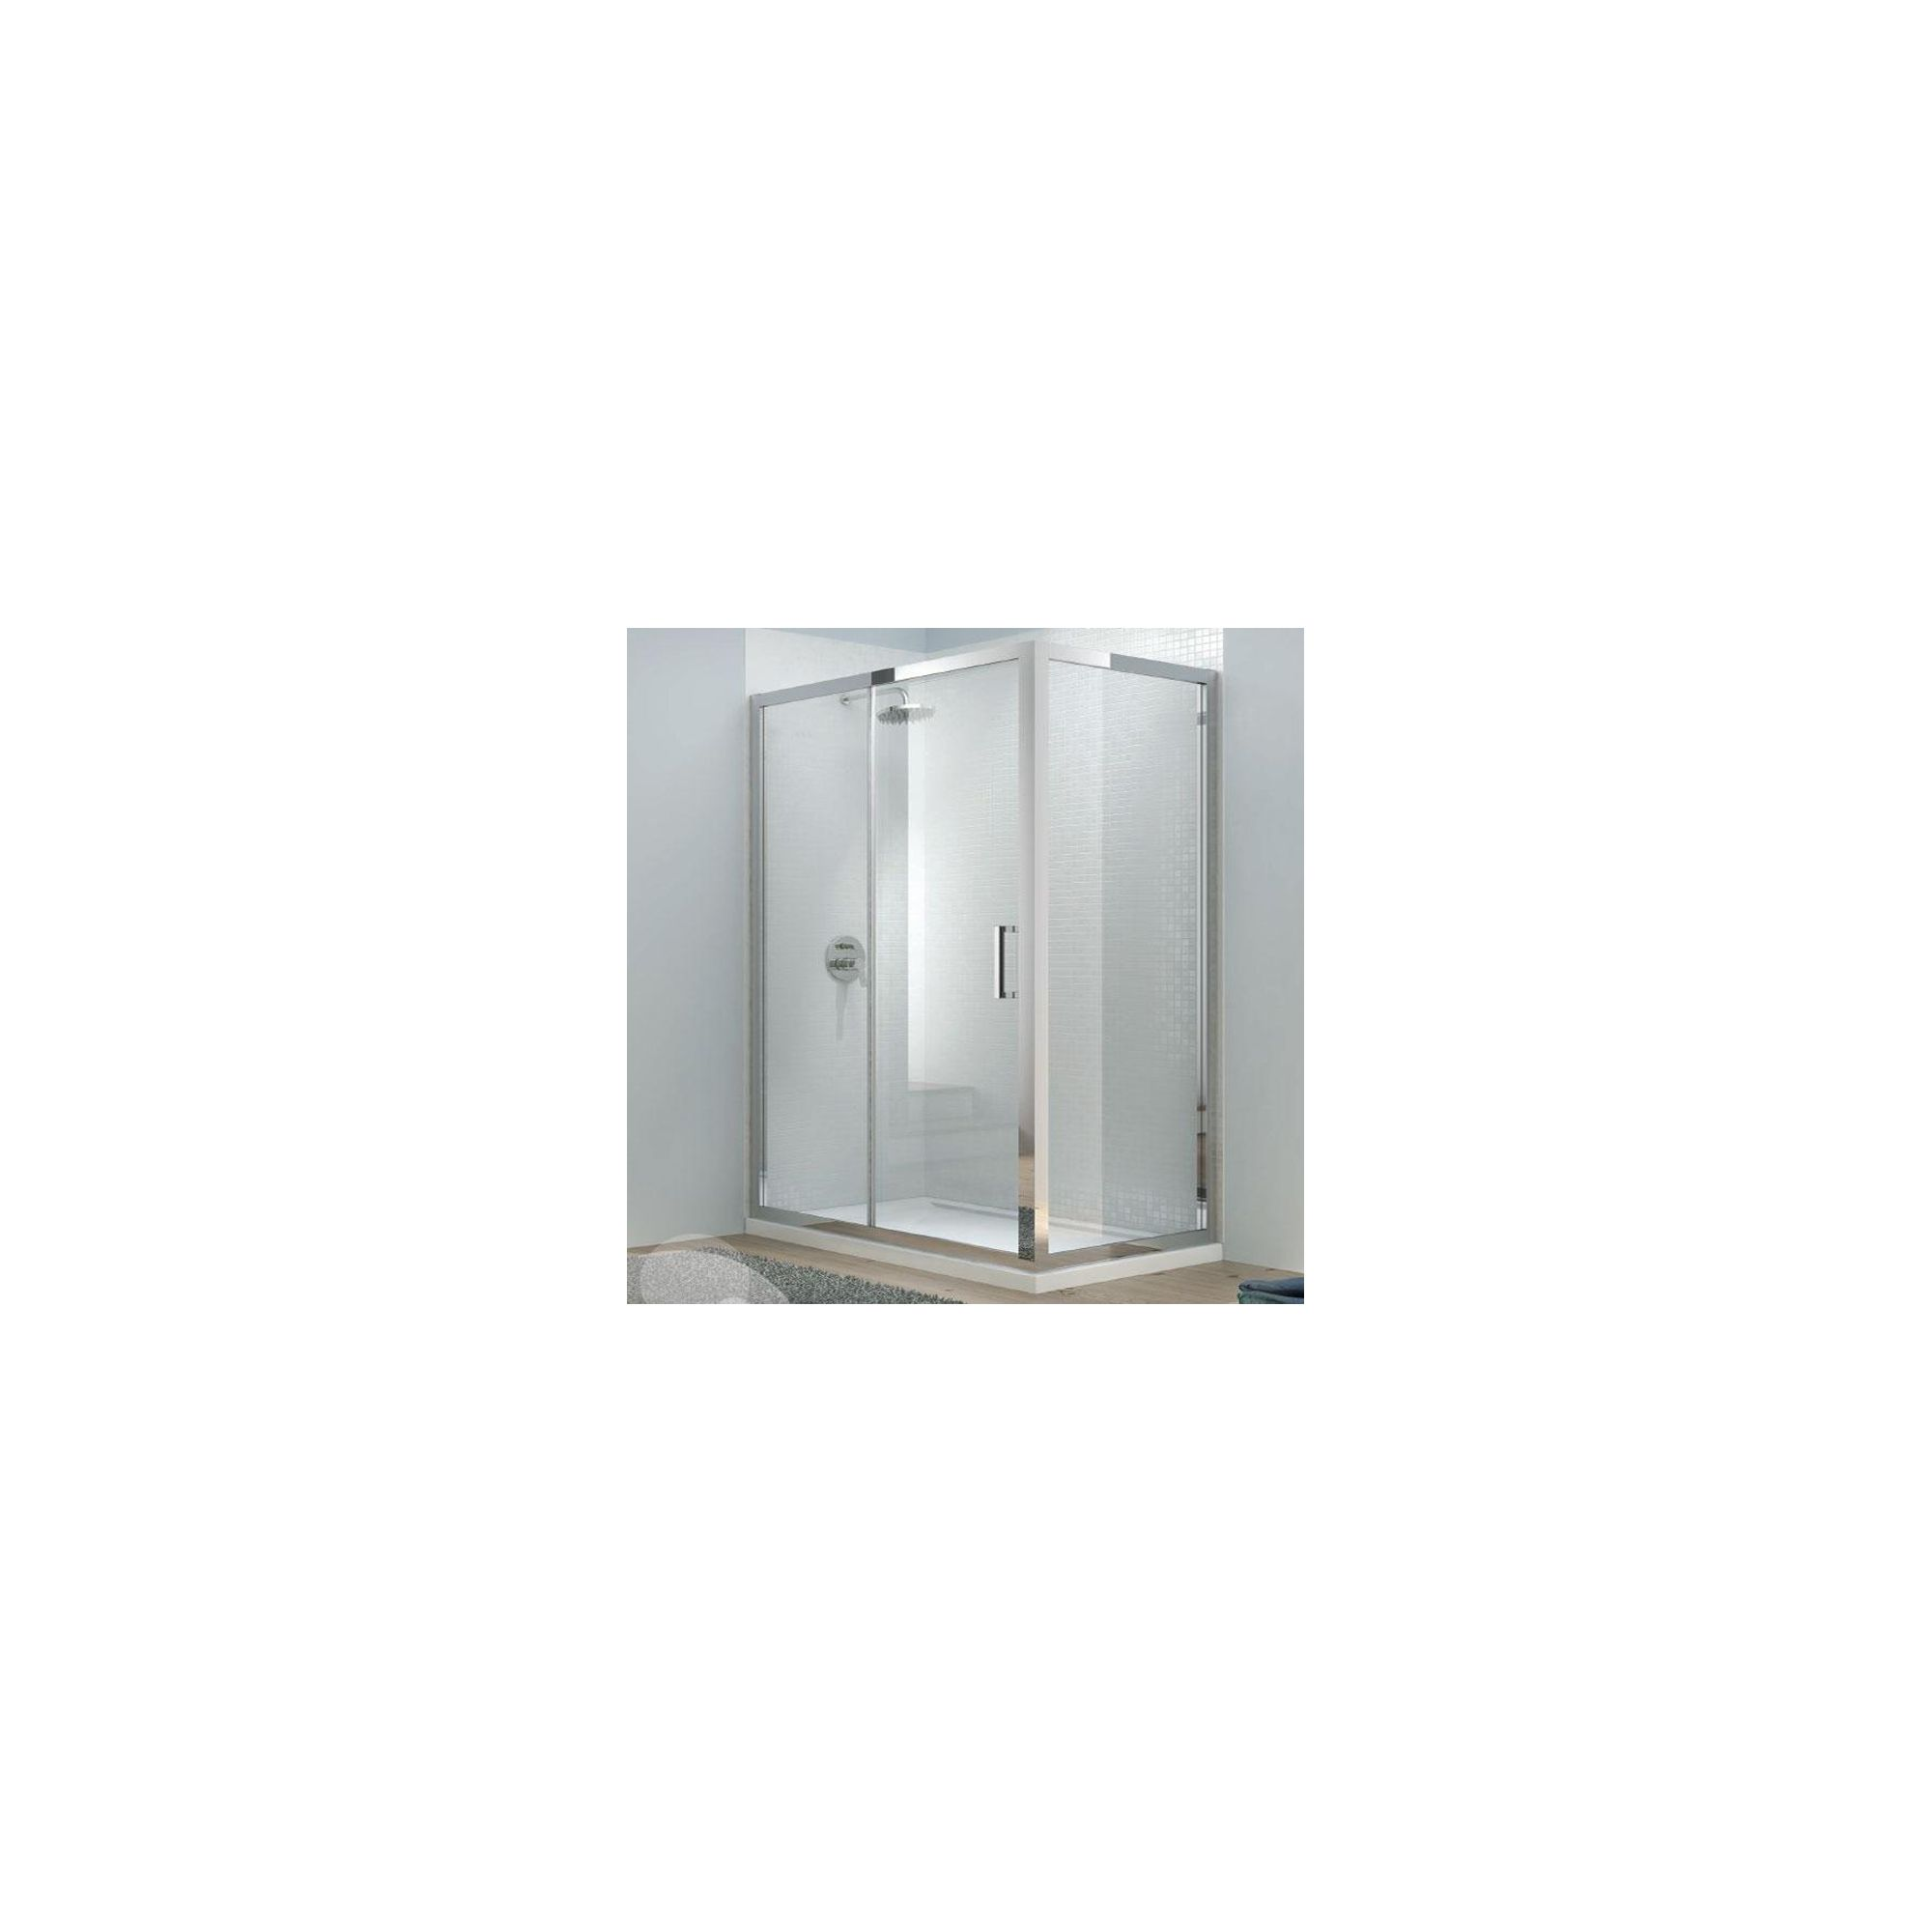 Merlyn Vivid Eight Sliding Shower Door, 1200mm Wide, 8mm Glass at Tesco Direct